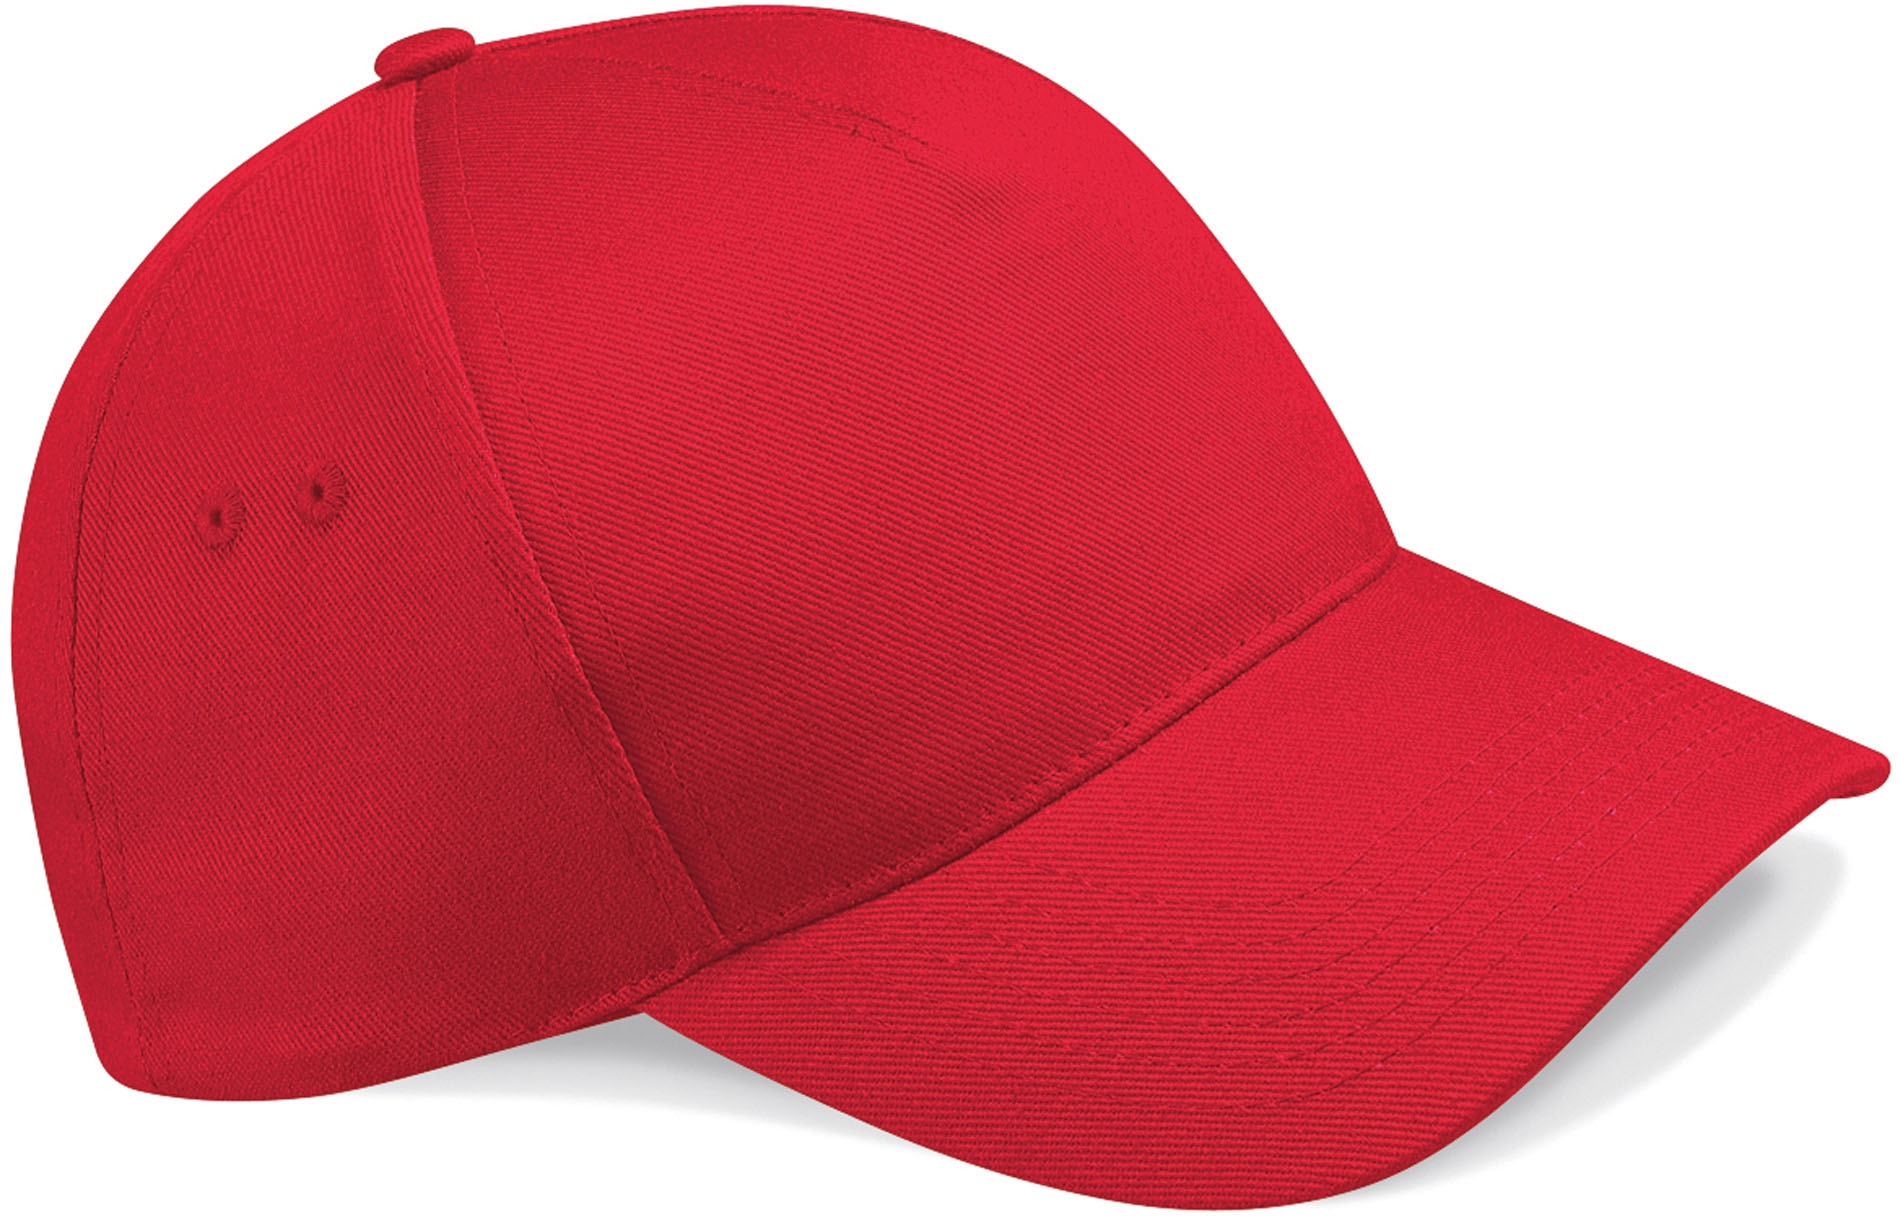 Casquette 5 panneaux Ultimate Rouge Classic Red